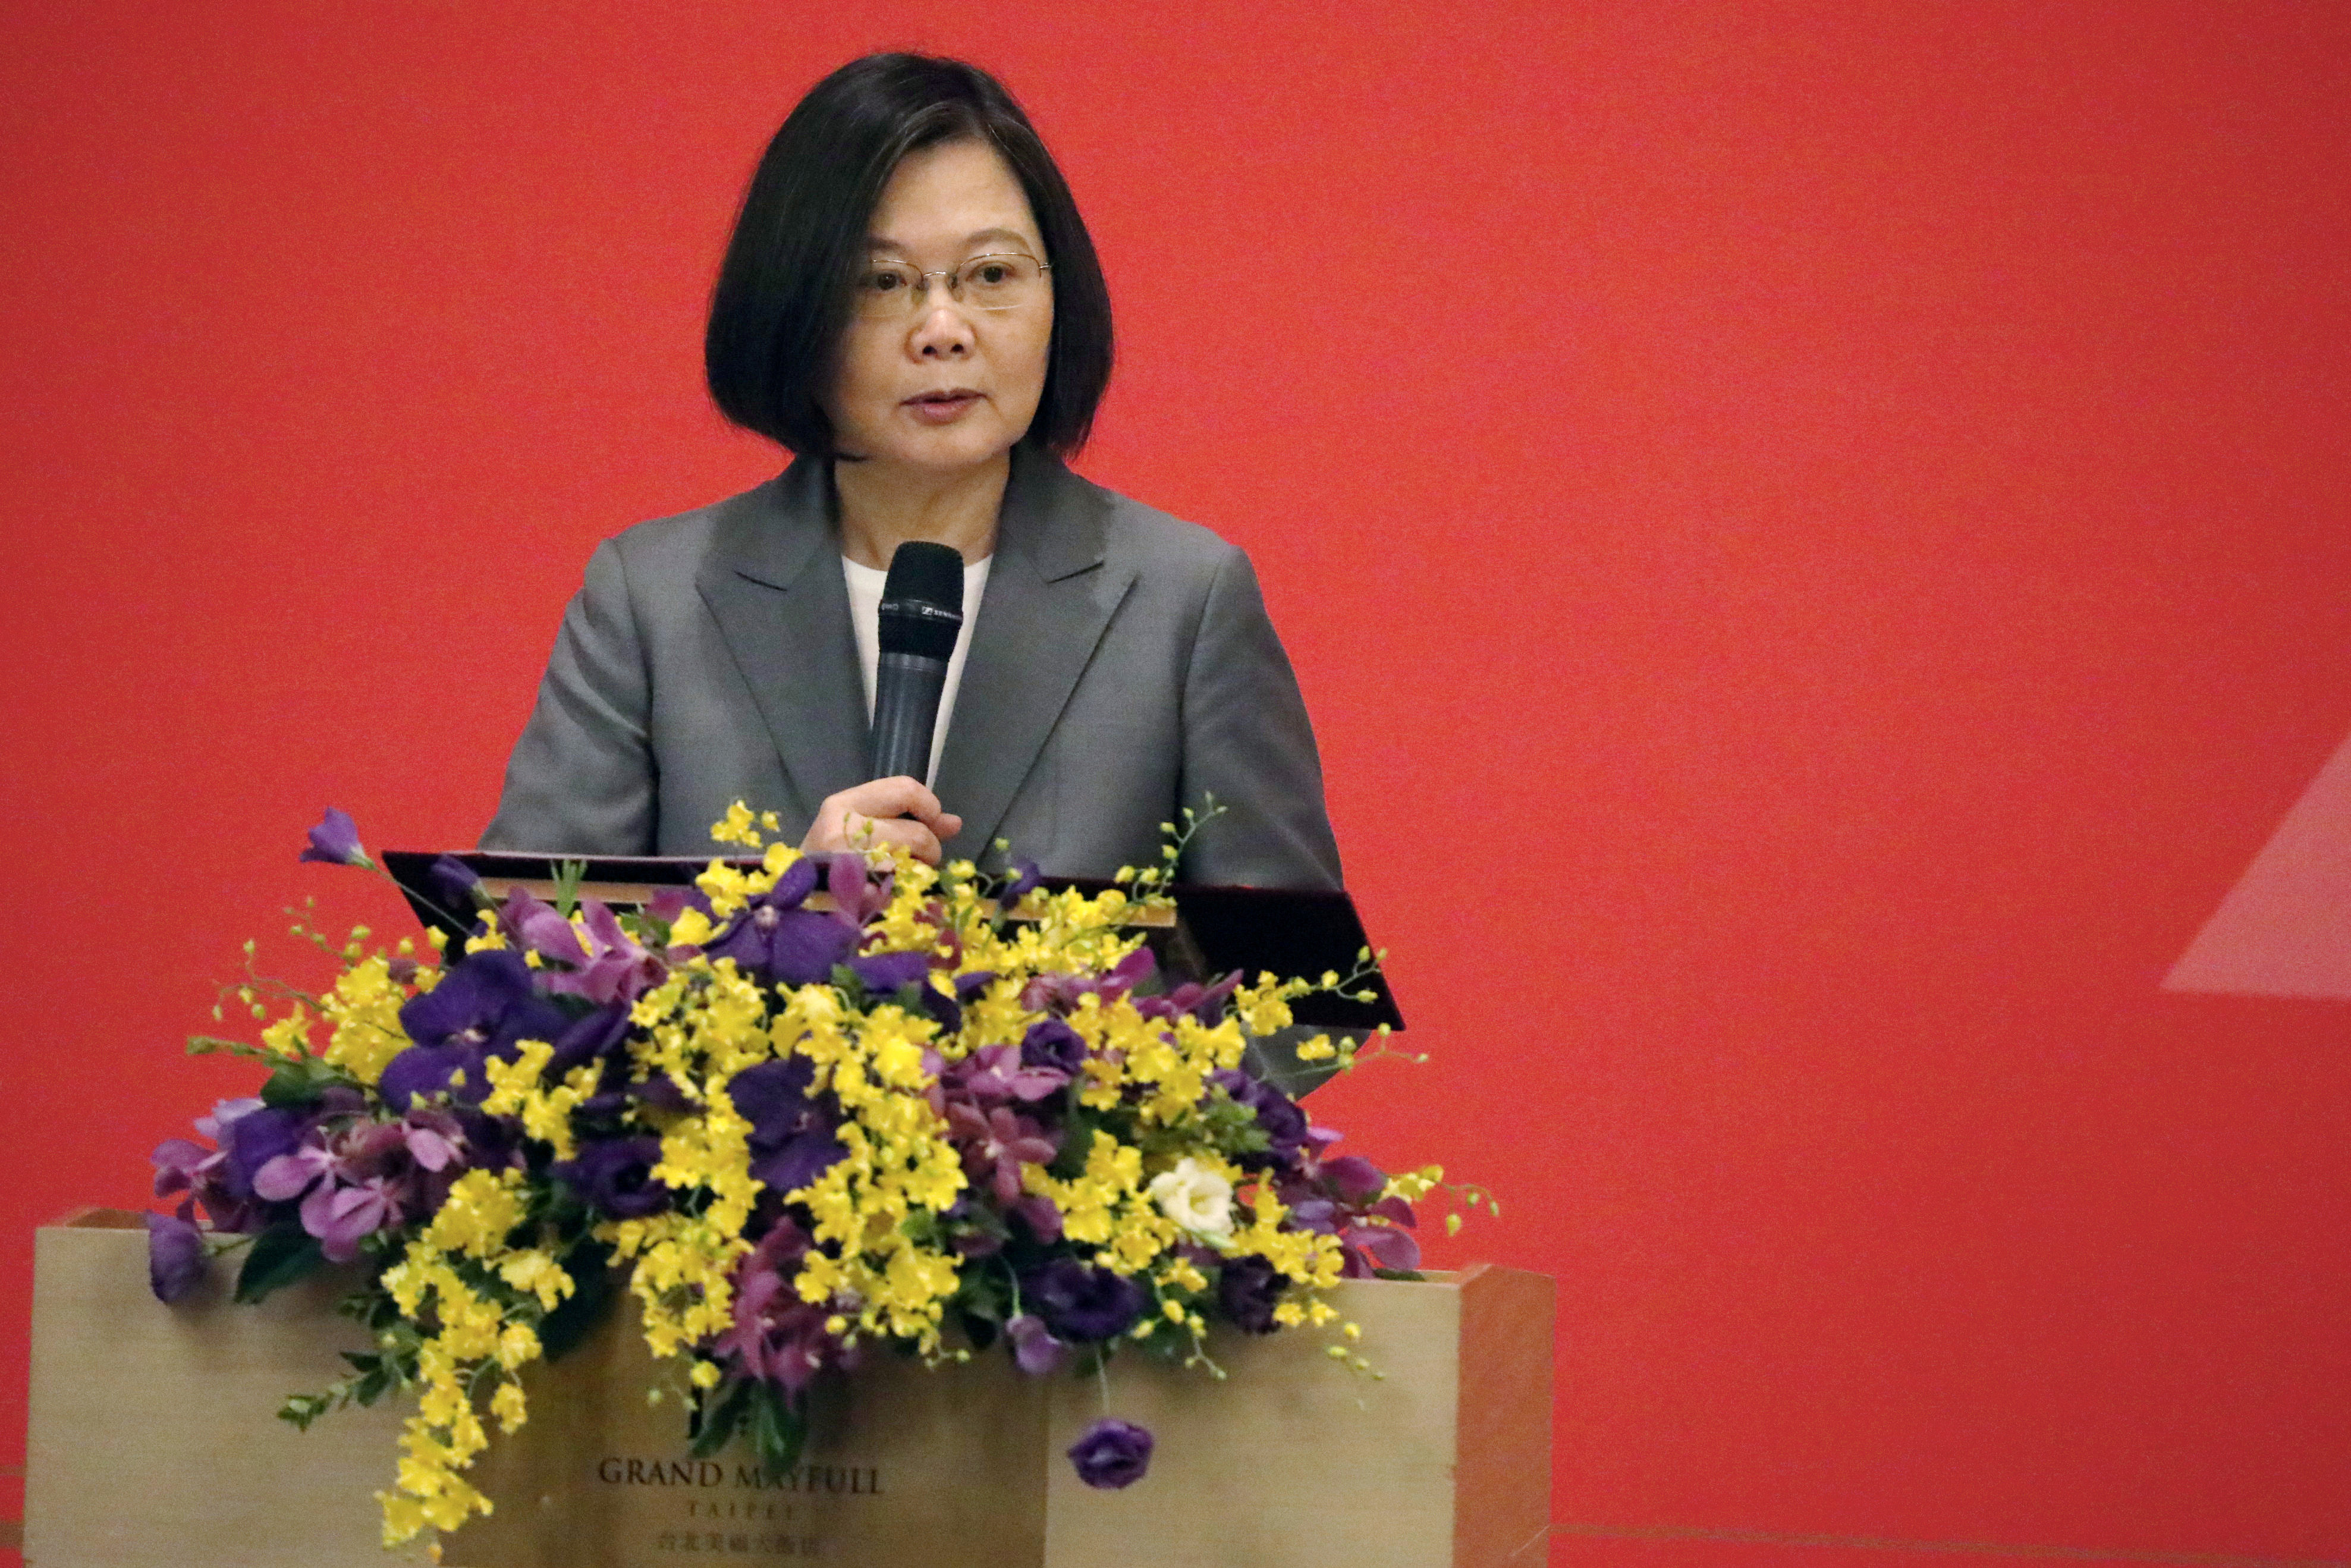 Taiwan's President Tsai Ing-wen speaks at The Third Wednesday Club, a high-profile private industry trade body in Taipei, Taiwan, August 19, 2020. REUTERS/Ann Wang